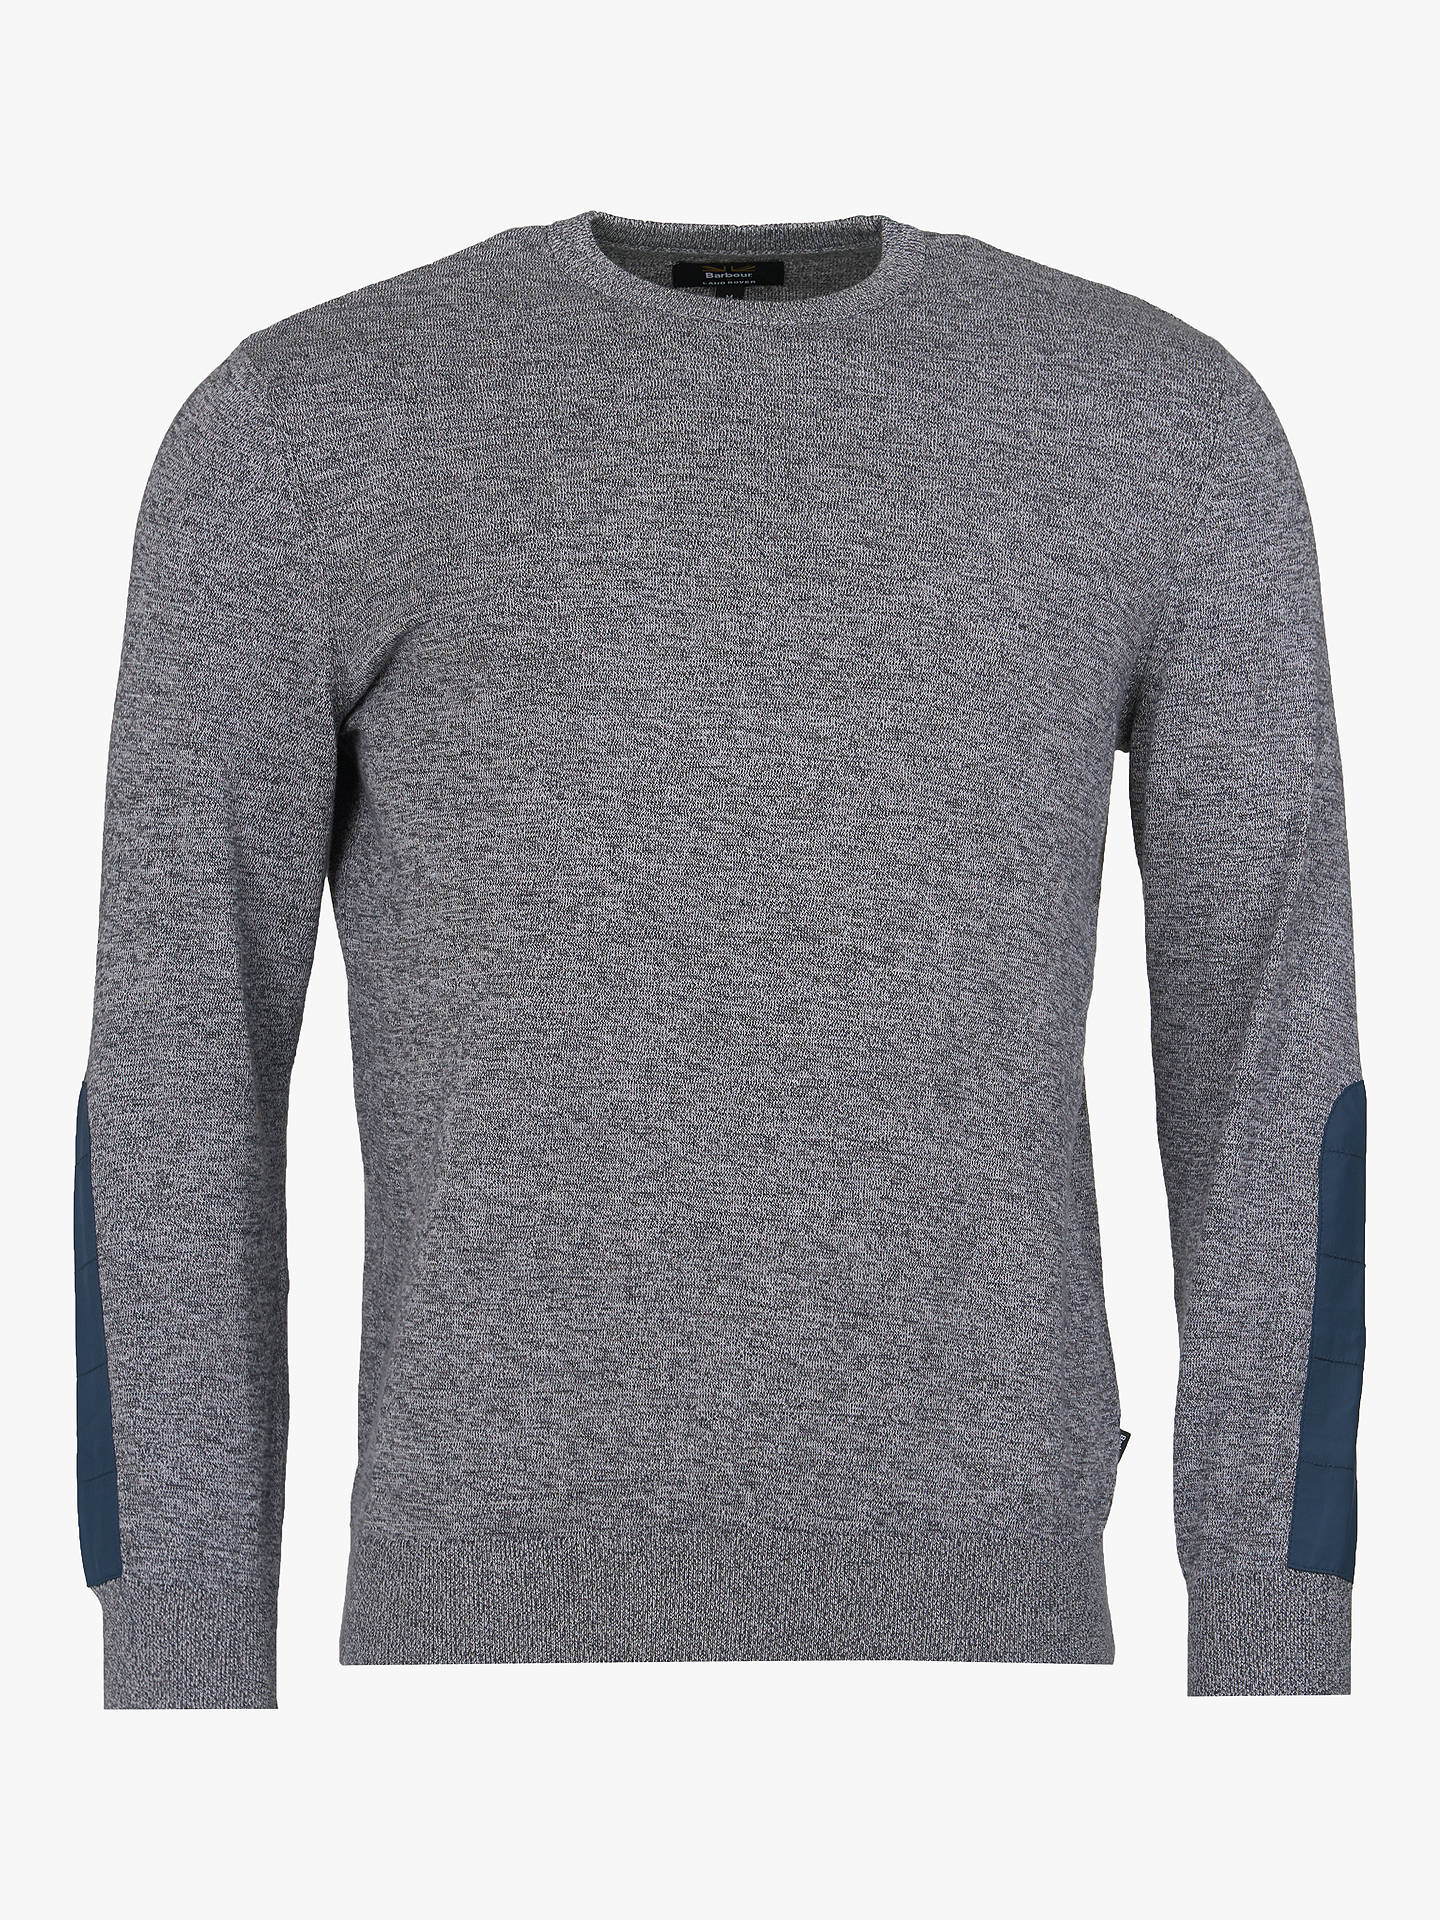 BuyBarbour Land Rover Defender Crew Neck Jumper, Grey Marl, M Online at johnlewis.com